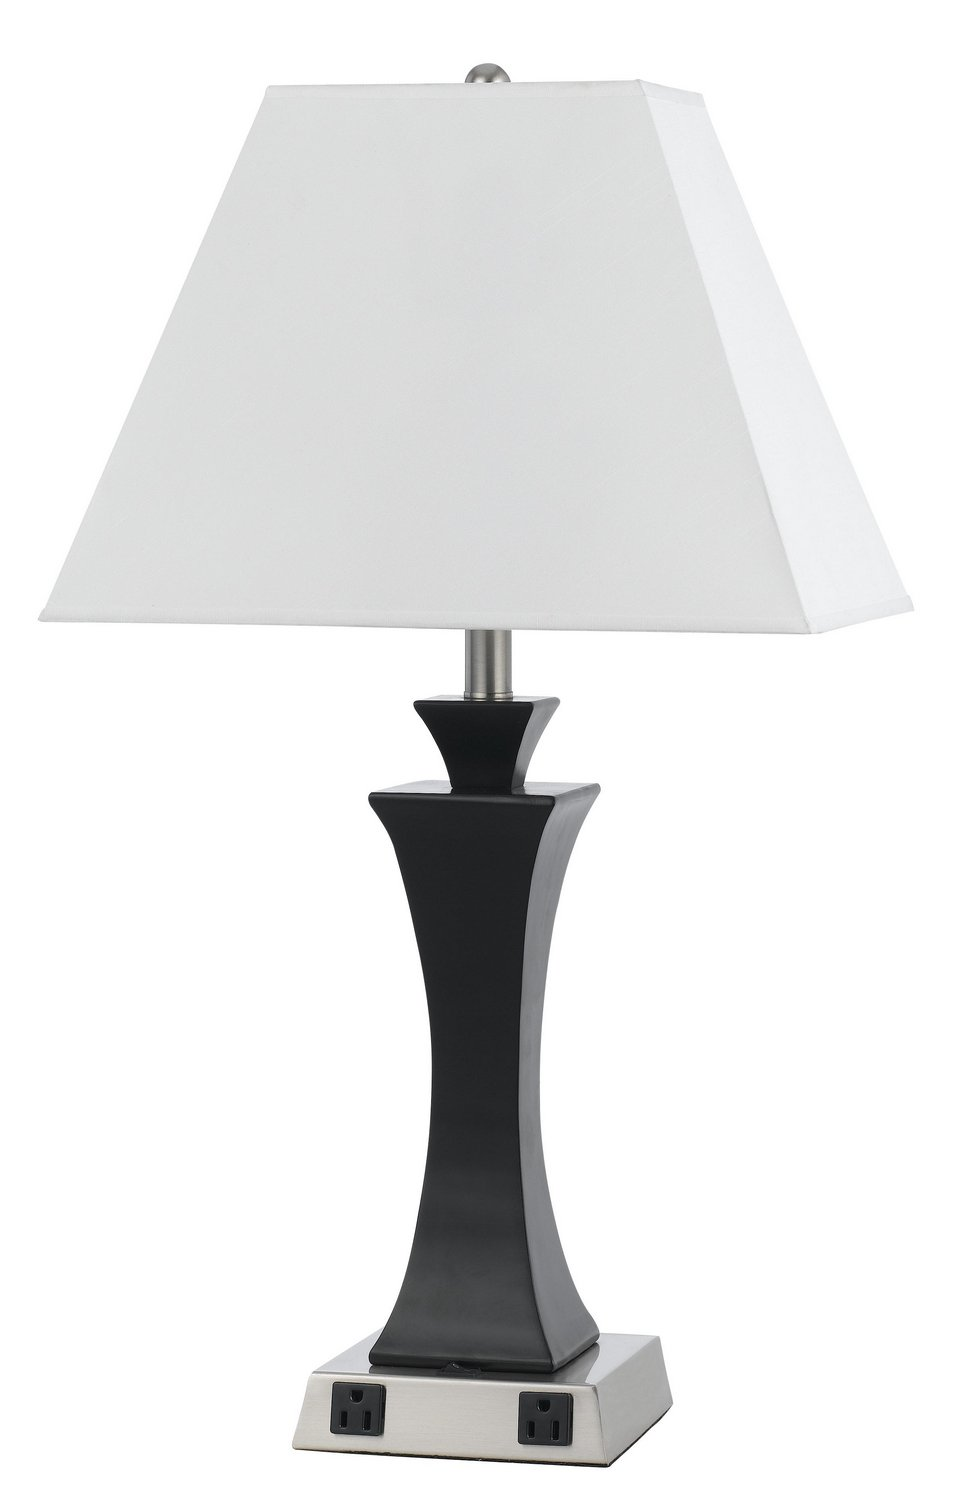 best table lamps with power outlets. Black Bedroom Furniture Sets. Home Design Ideas